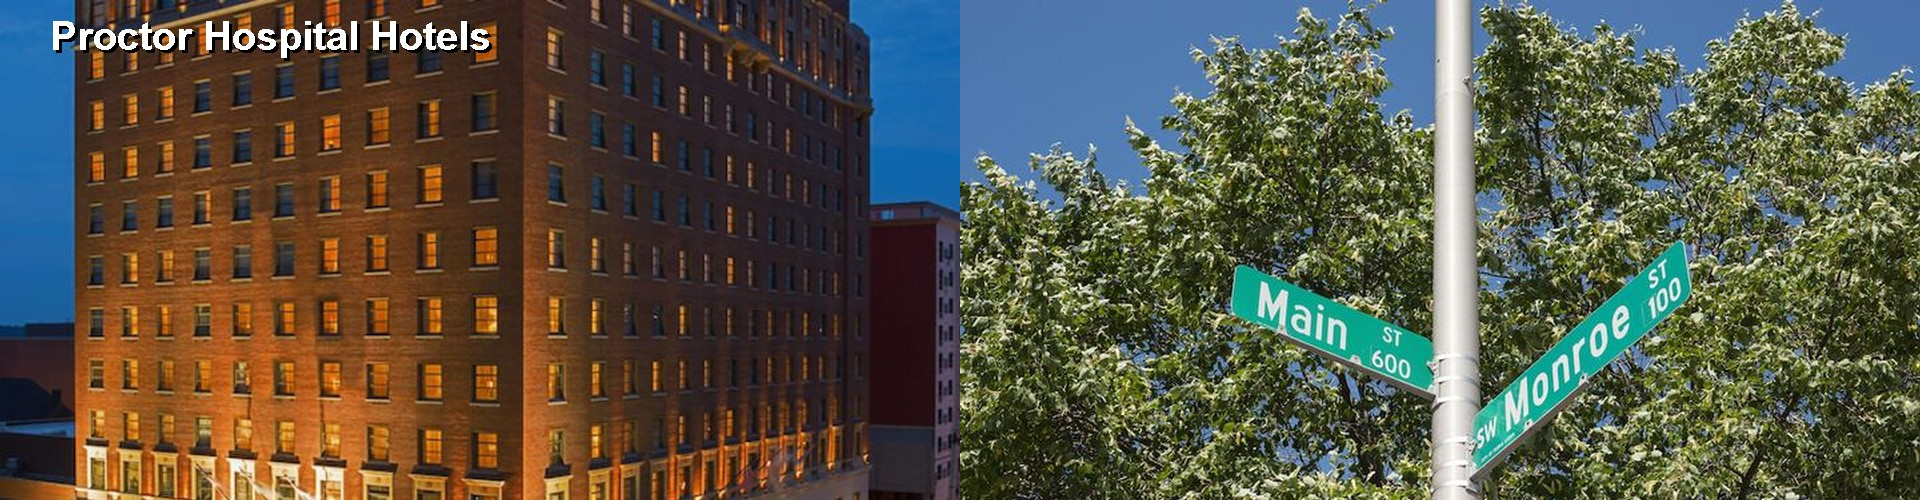 $43+ hotels near proctor hospital in peoria (il)